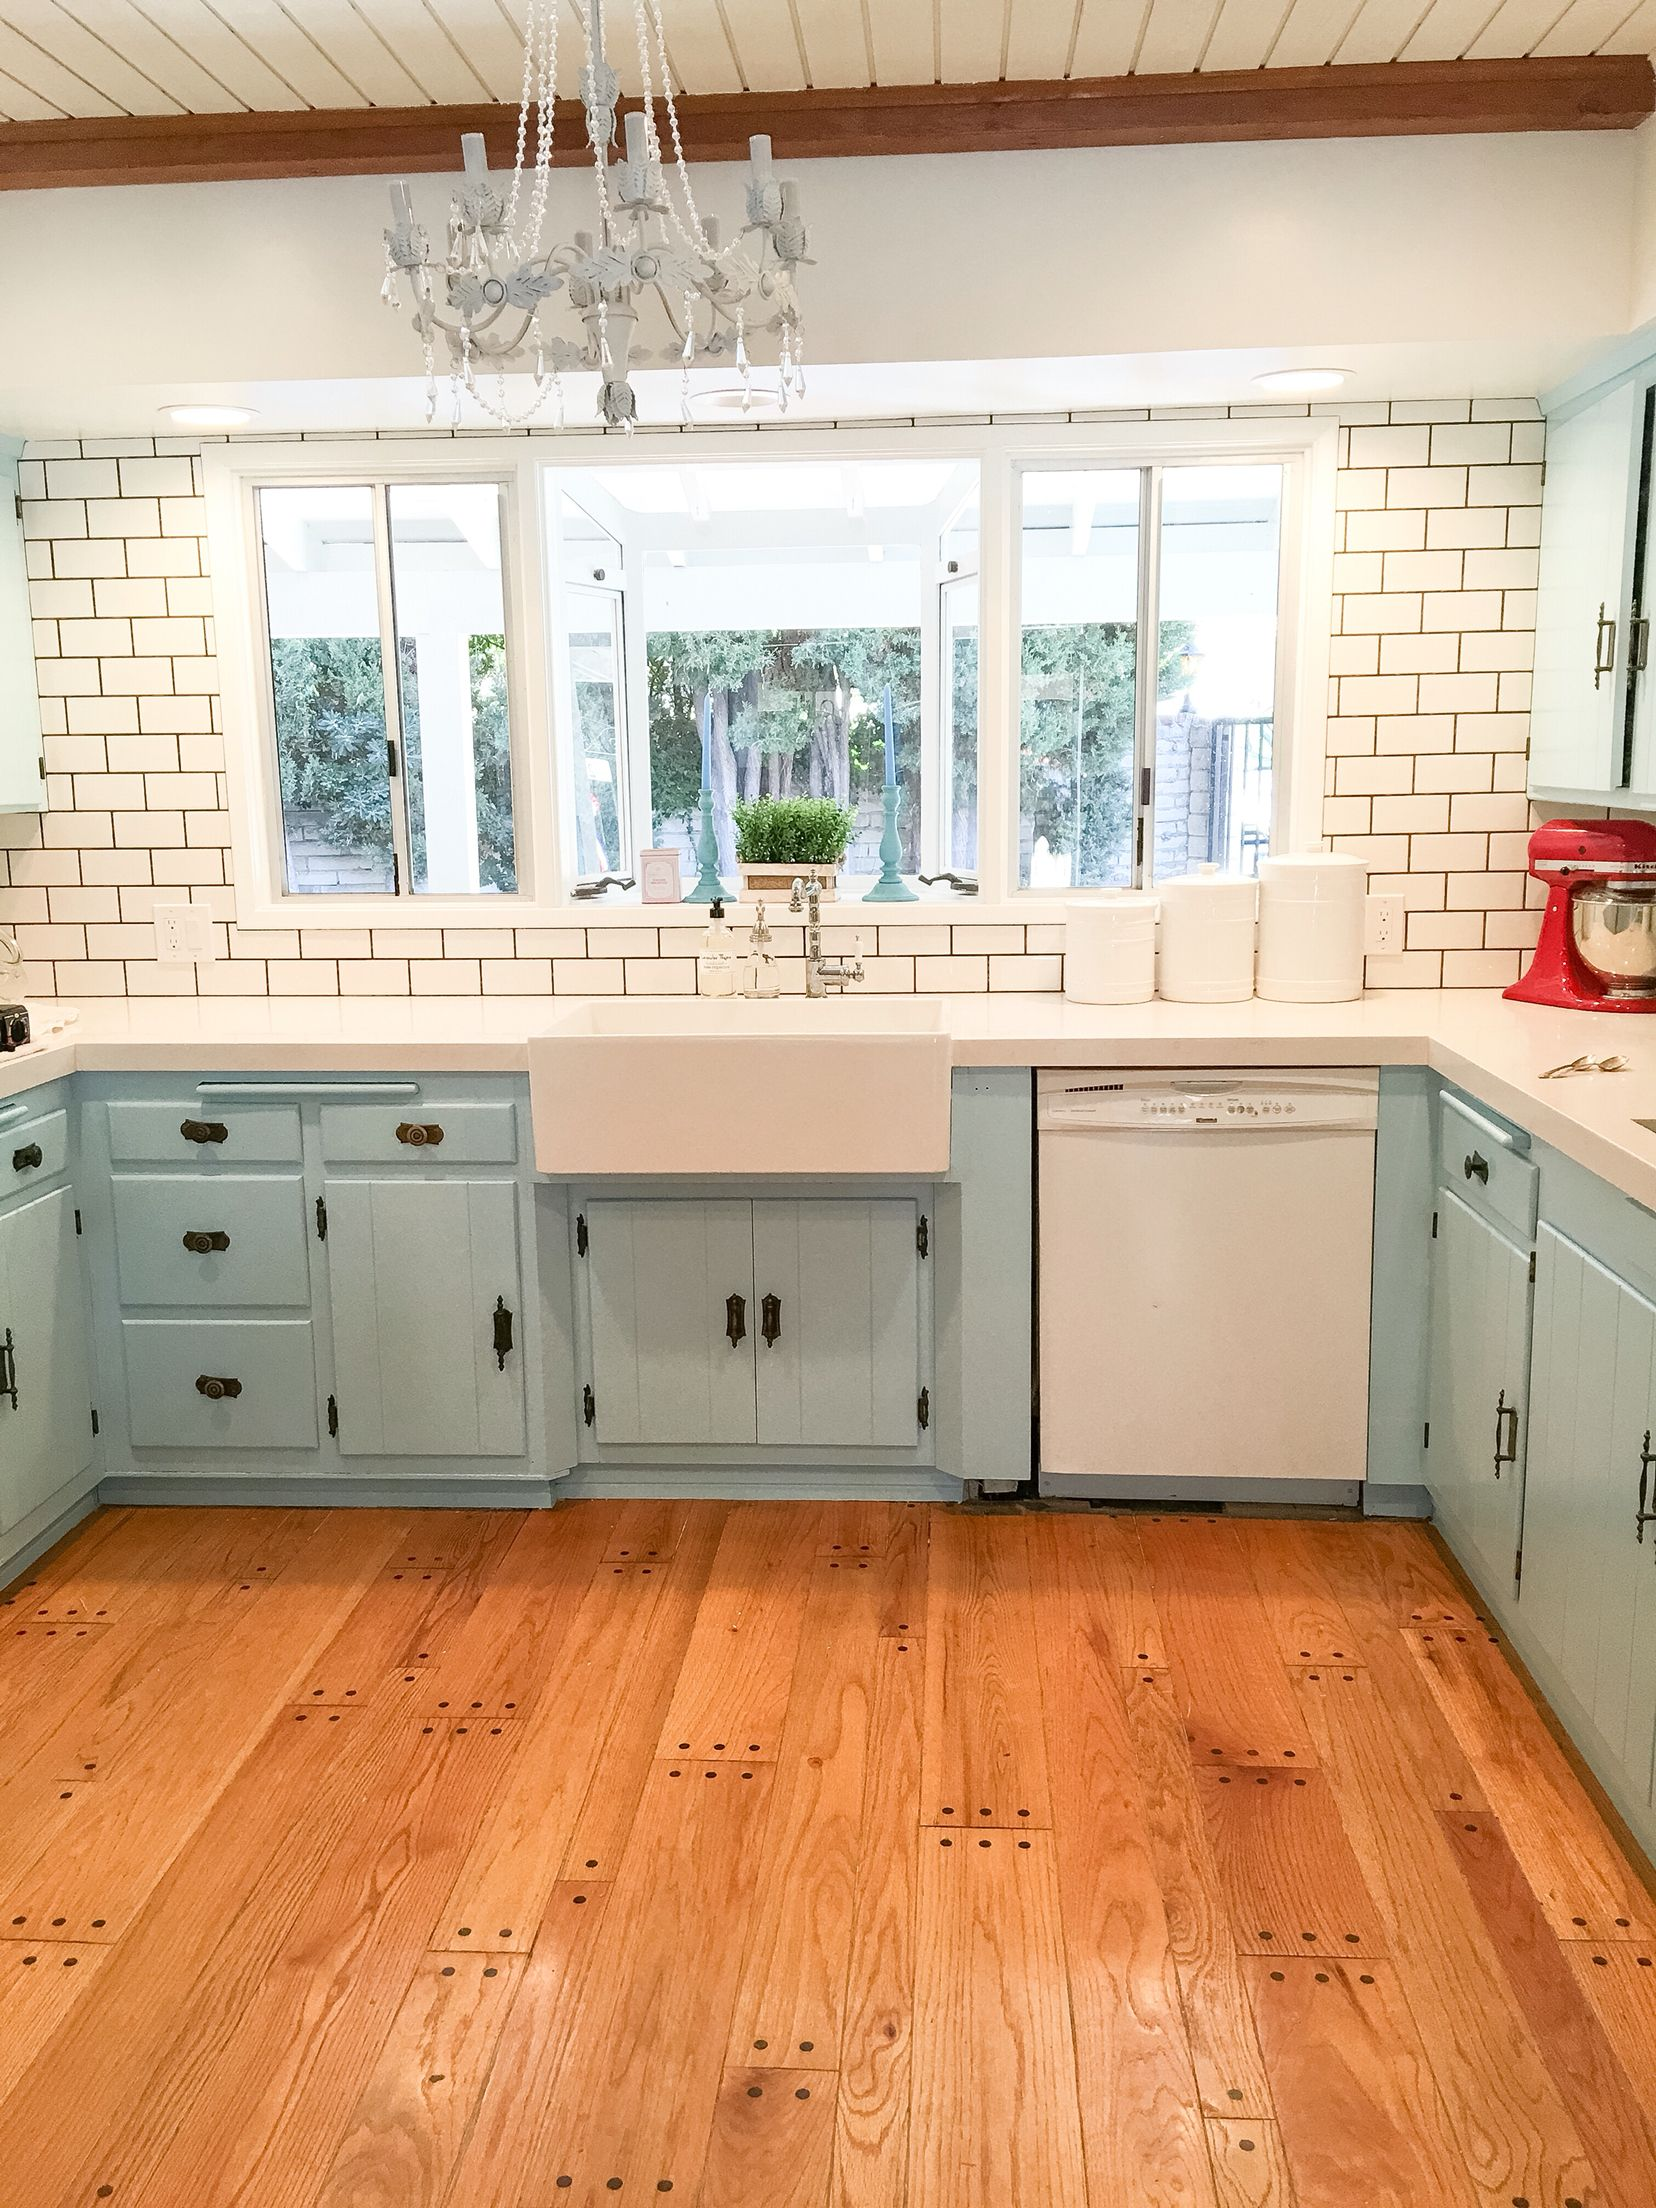 Farmhouse French Provencal Inspired Kitchens For Our House Remodel Phase 1 Light Blue Kit Trendy Farmhouse Kitchen Kitchen Cabinet Styles Dark Green Kitchen